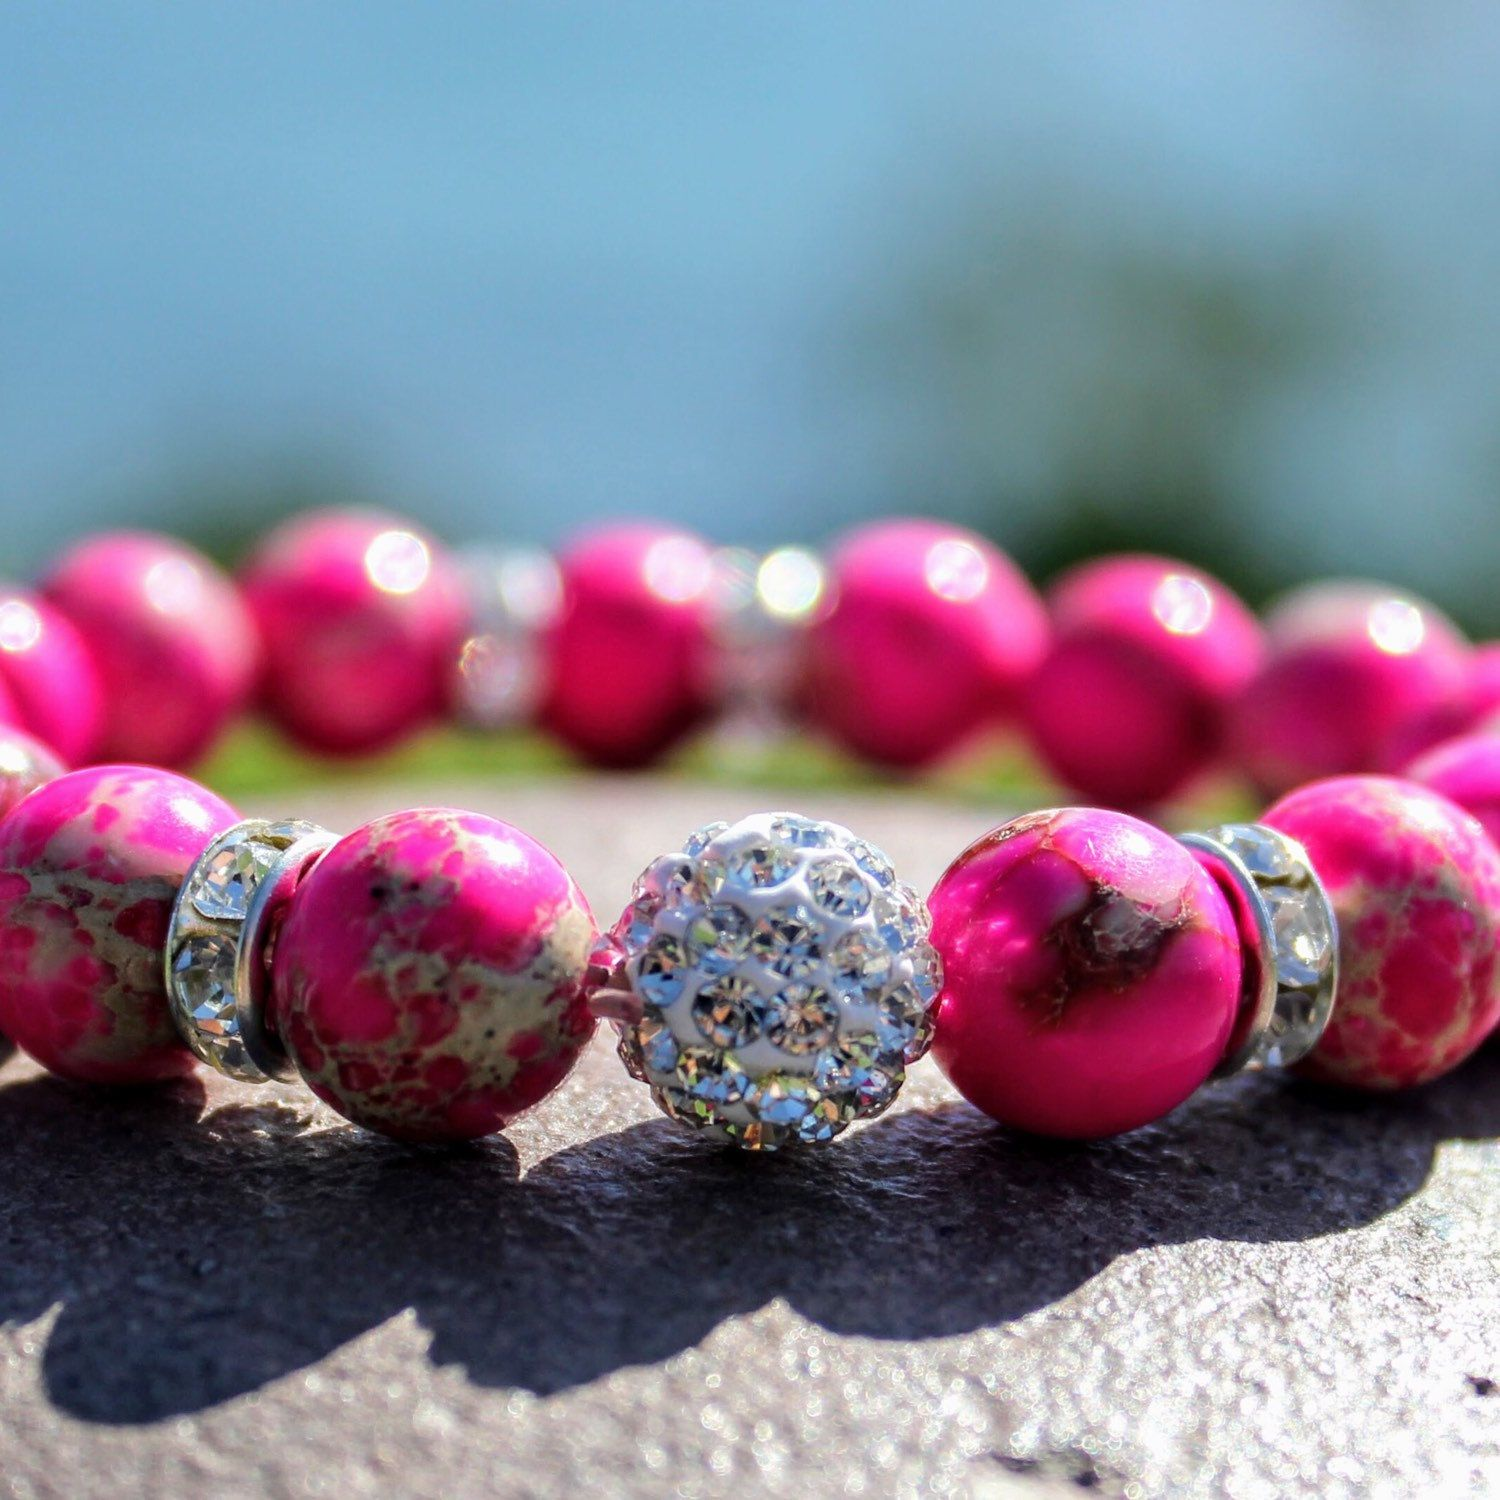 Blingy Pink Jasper Mala Gemstone Bracelets  Perfect for Spring and Summer fashion! Shop more colors and styles!   Shop Now:   www.etsy.com/shop/AshleyNicoleByJulie